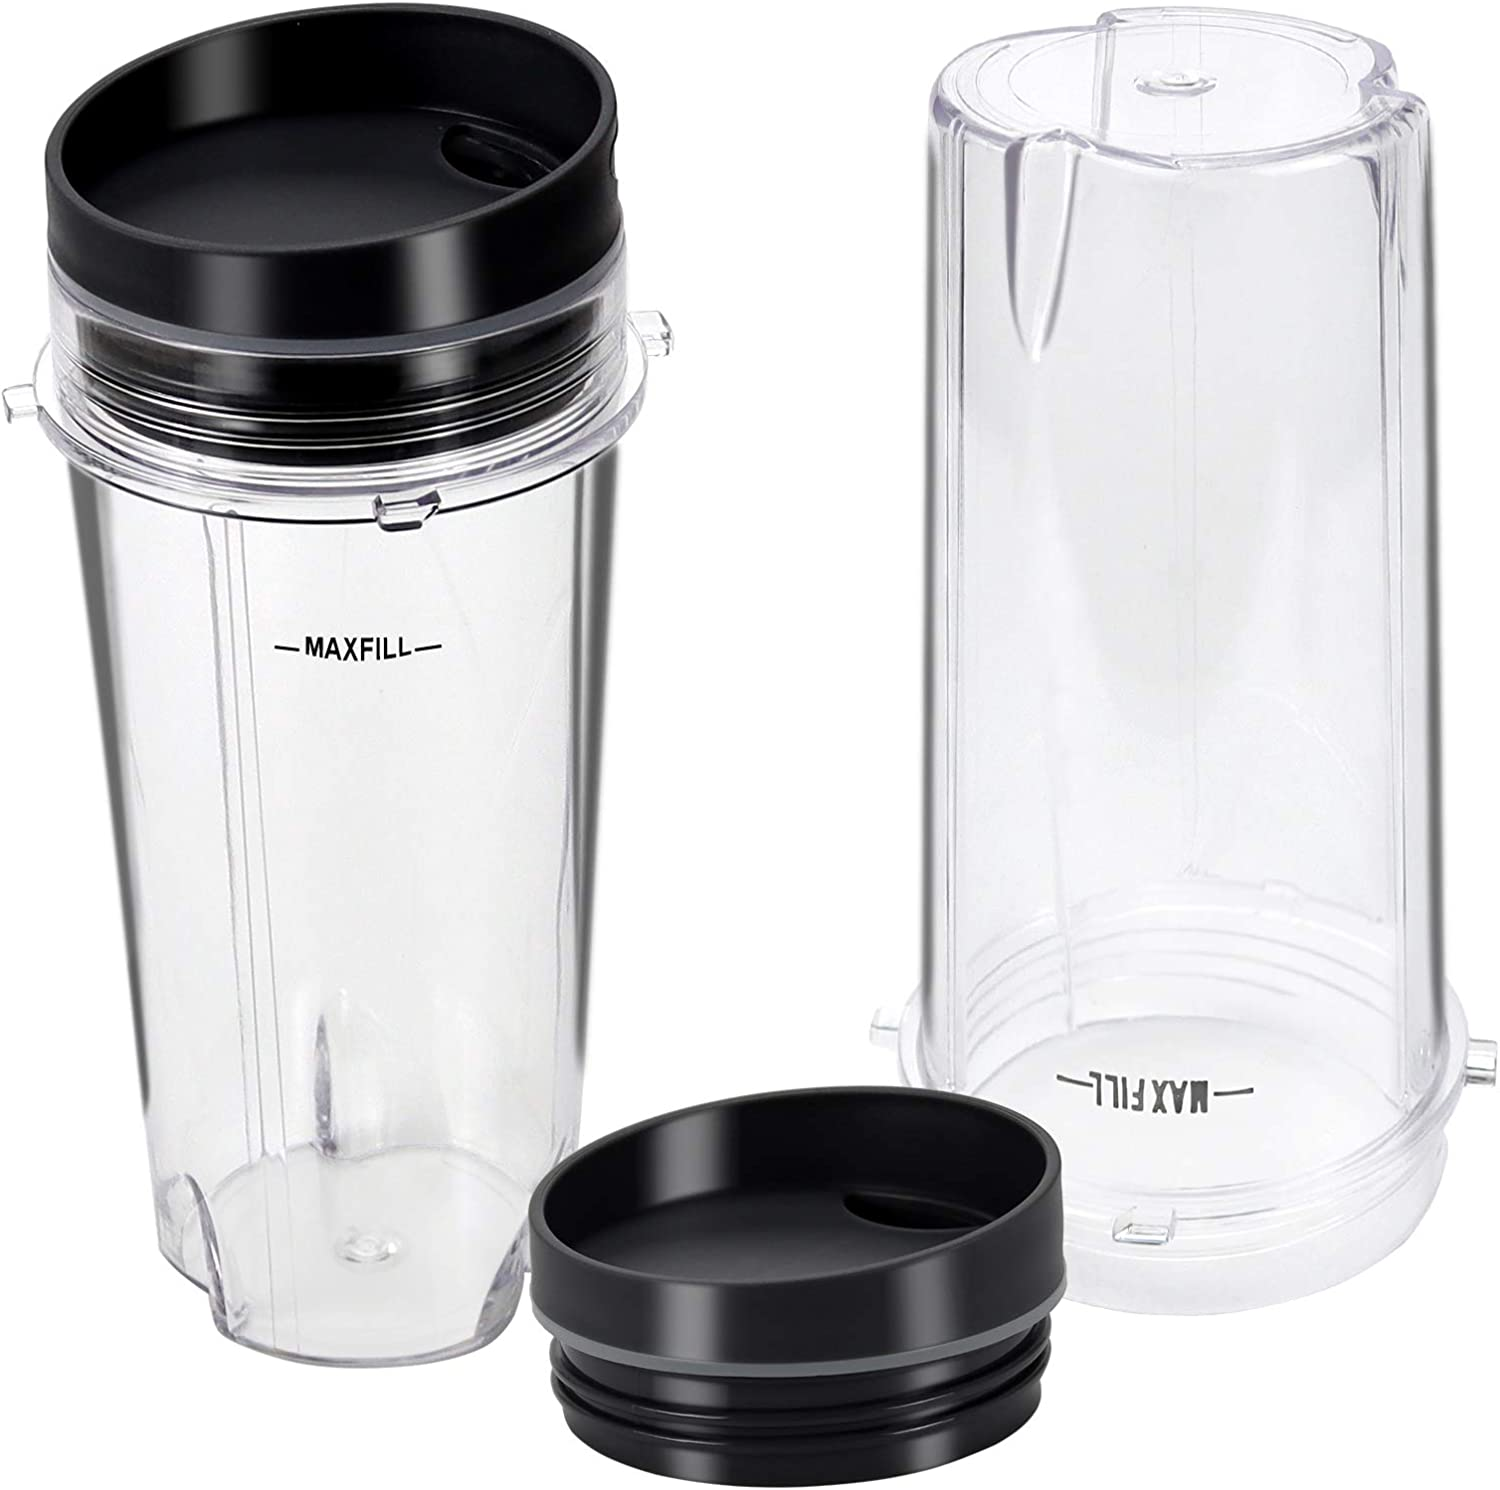 16oz Blender Replacement Cup with 2 Sip Lids Set Compatible with Nutri Ninja BL660, BL770, BL810, BL780, BL740 Series Blender by Fetechmate (Pack of 2)